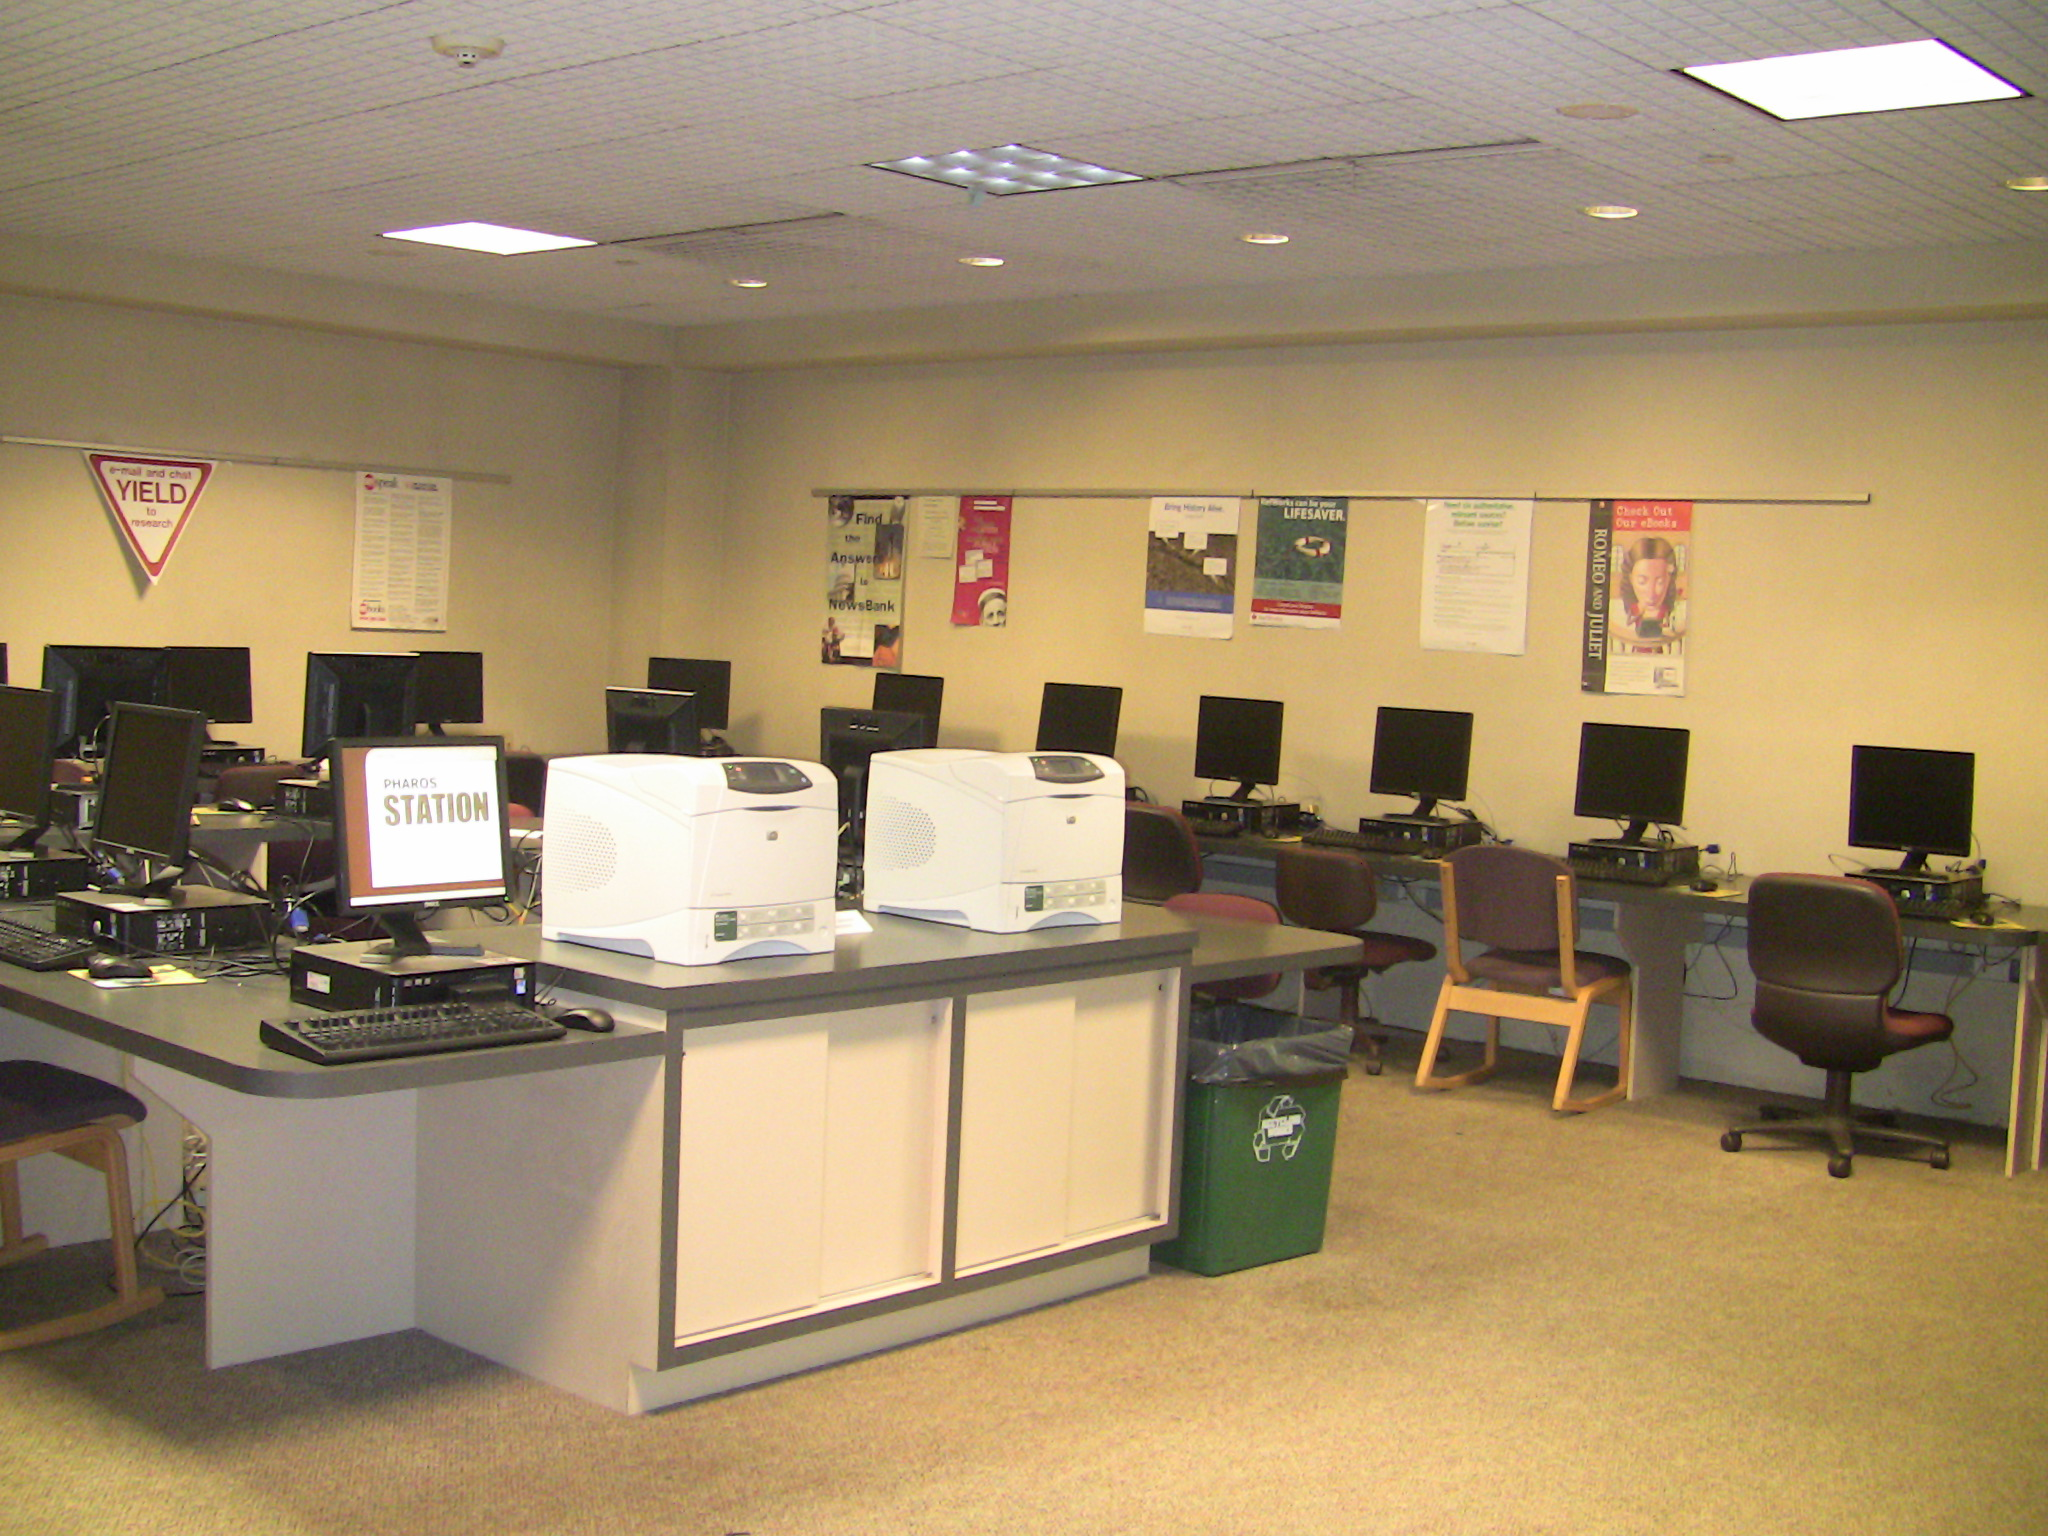 Library Feng Shui Uofslibrary News